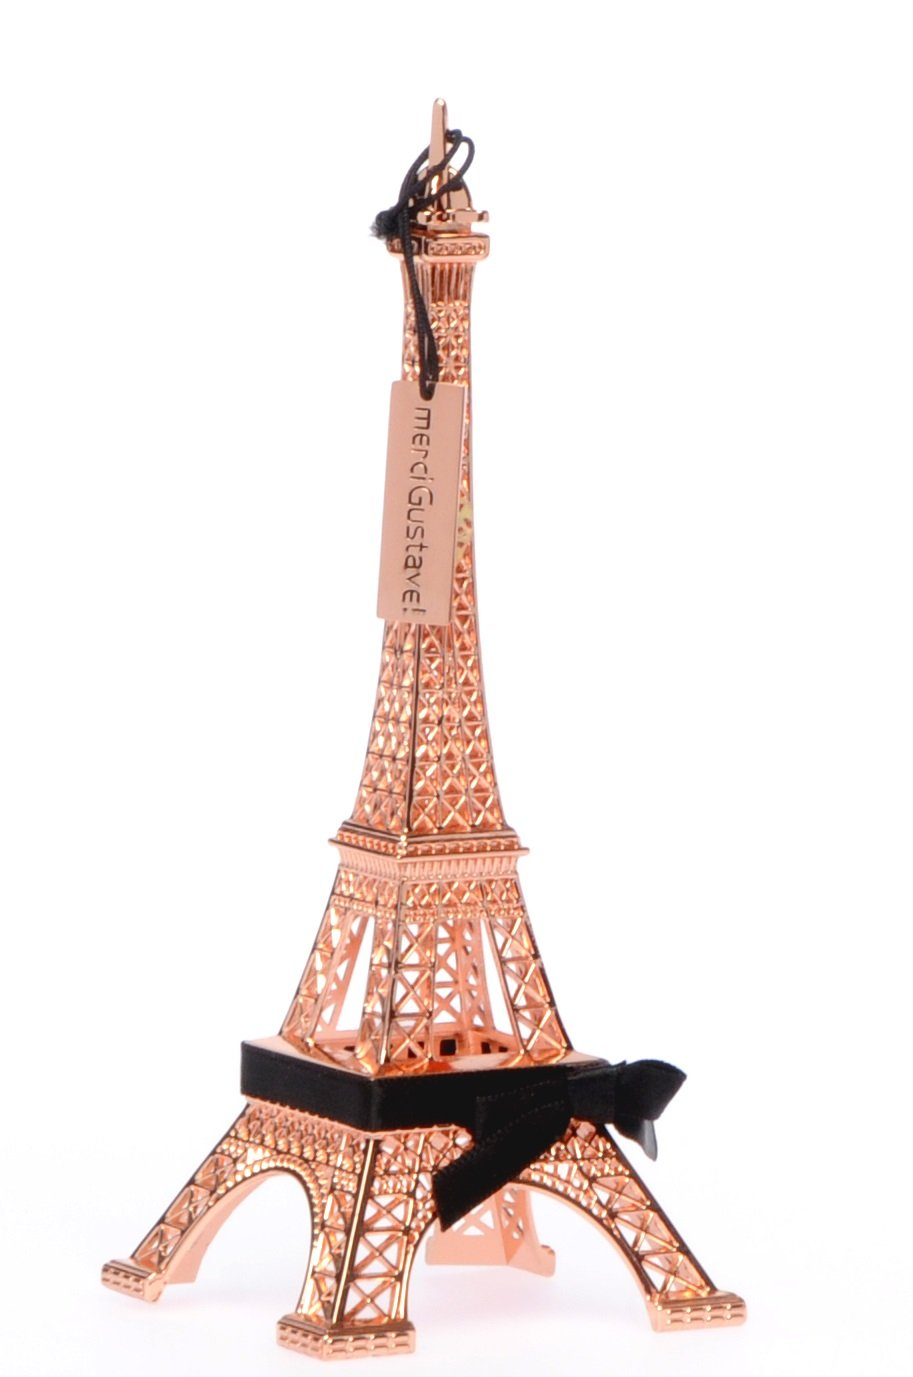 Fox Trot mngm0236 Torre Eiffel Mini Gus. 15 cm Metallo so Parisienne 6 x 6 x 15.5 cm FTD